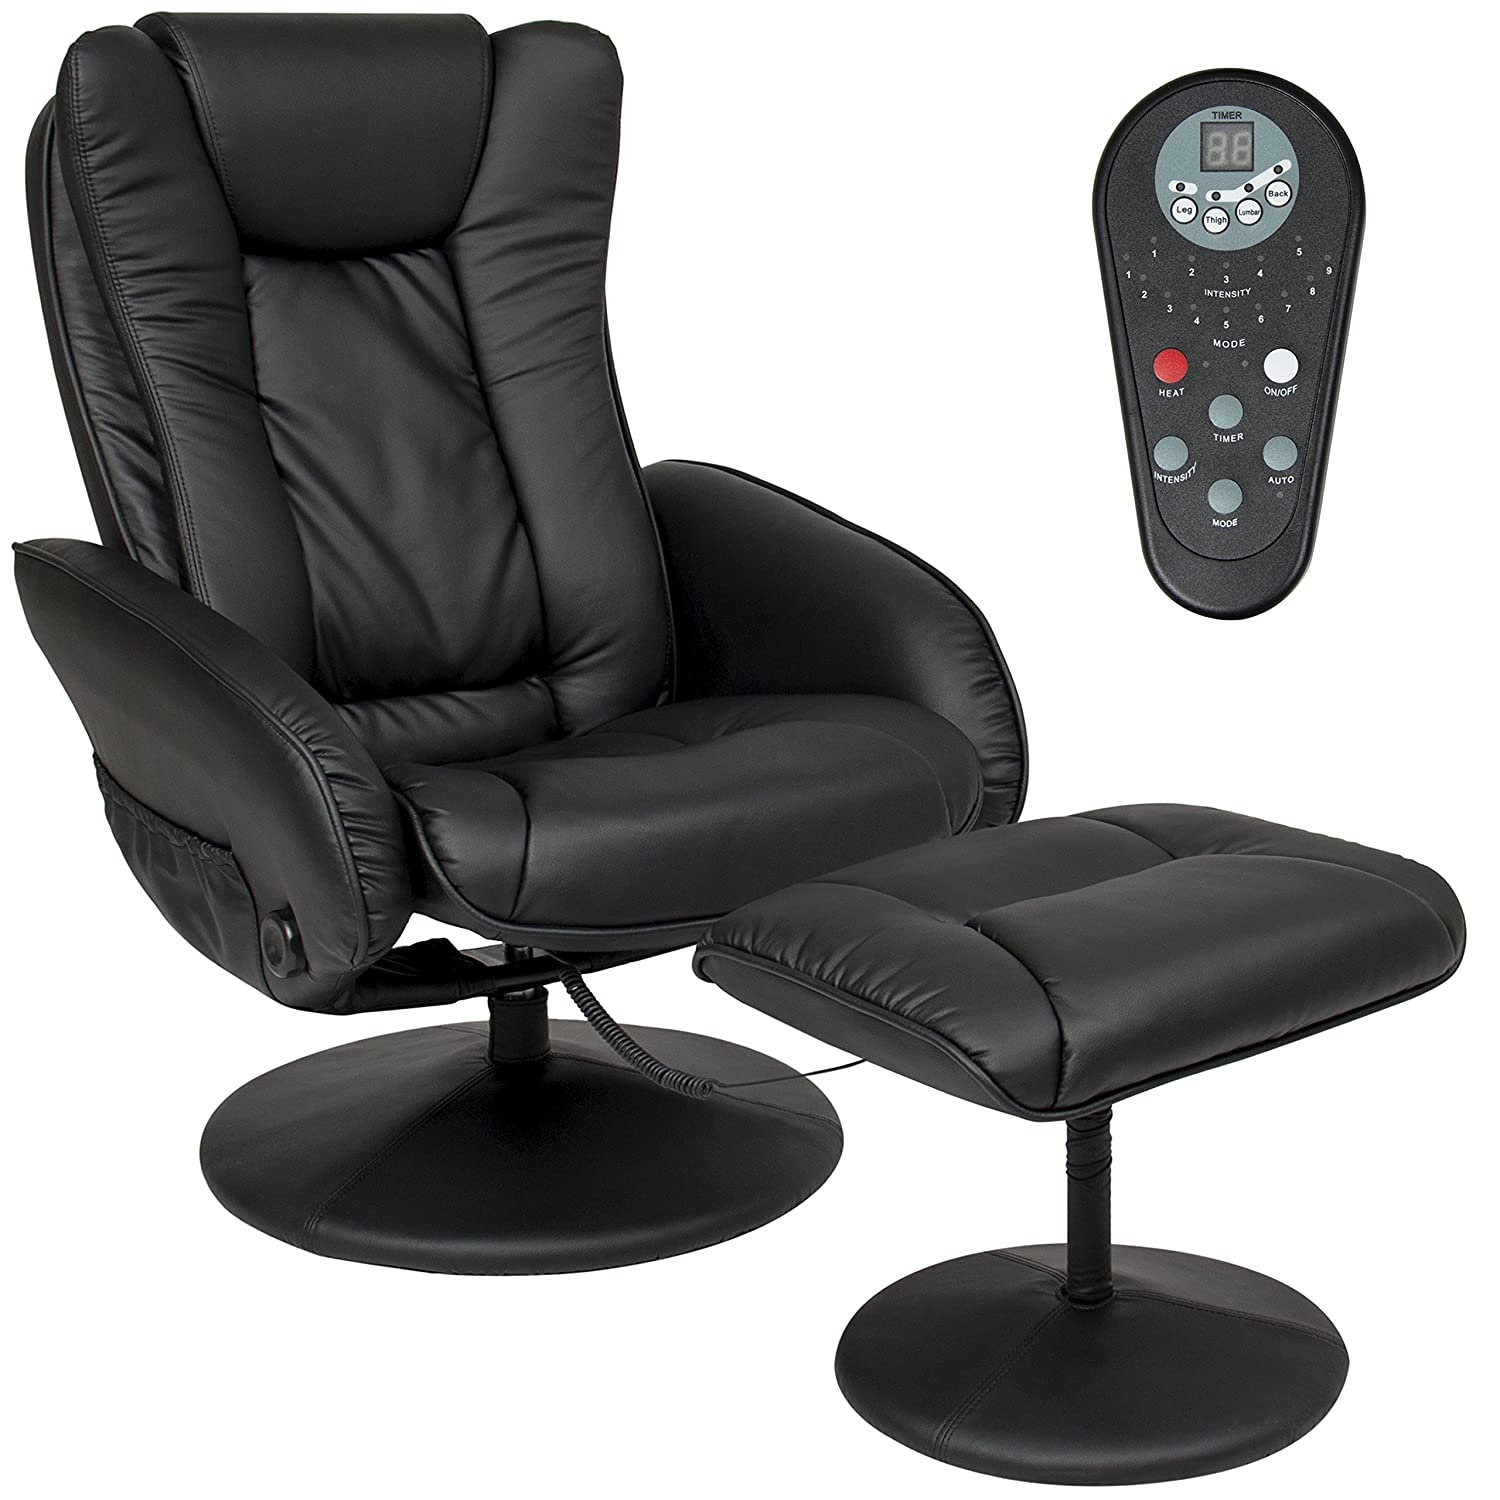 Best Choice Products SKY2891 Massage Chair Black Friday Deals 2019